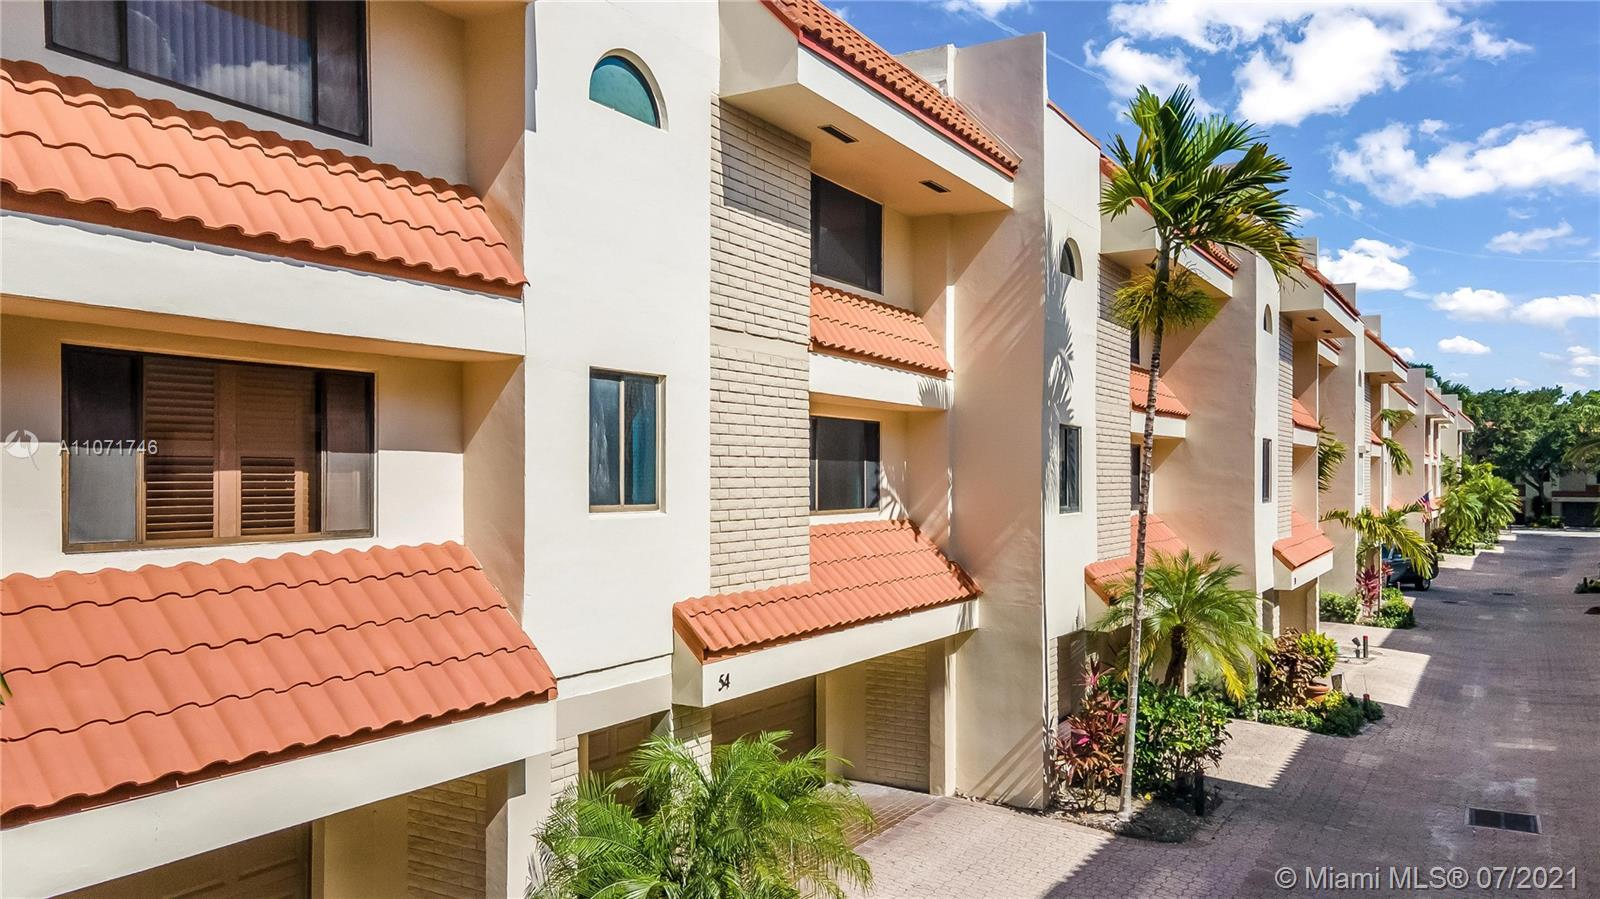 Highly desirable townhouse located in Fort Lauderdale's Victoria Park! Conveniently located by the beach, Galleria Mall, Las Olas and 15 minutes away from the airport. Gated tri-level, 3 bedrooms (Currently open as a den) 2.5 Bathroom, 2 car garage, townhome offers an open concept living area, with an outdoor terrace, perfect for entertaining! Open dining /kitchen with granite countertops, stainless steel appliances, front load W/D and much more. Not to mention , this gated community has recently undergone major improvements: new roof, exterior painting, landscaping, and also has a large pool area. Pets! No problem; you are just a few steps away from Holiday Park (with dog park).